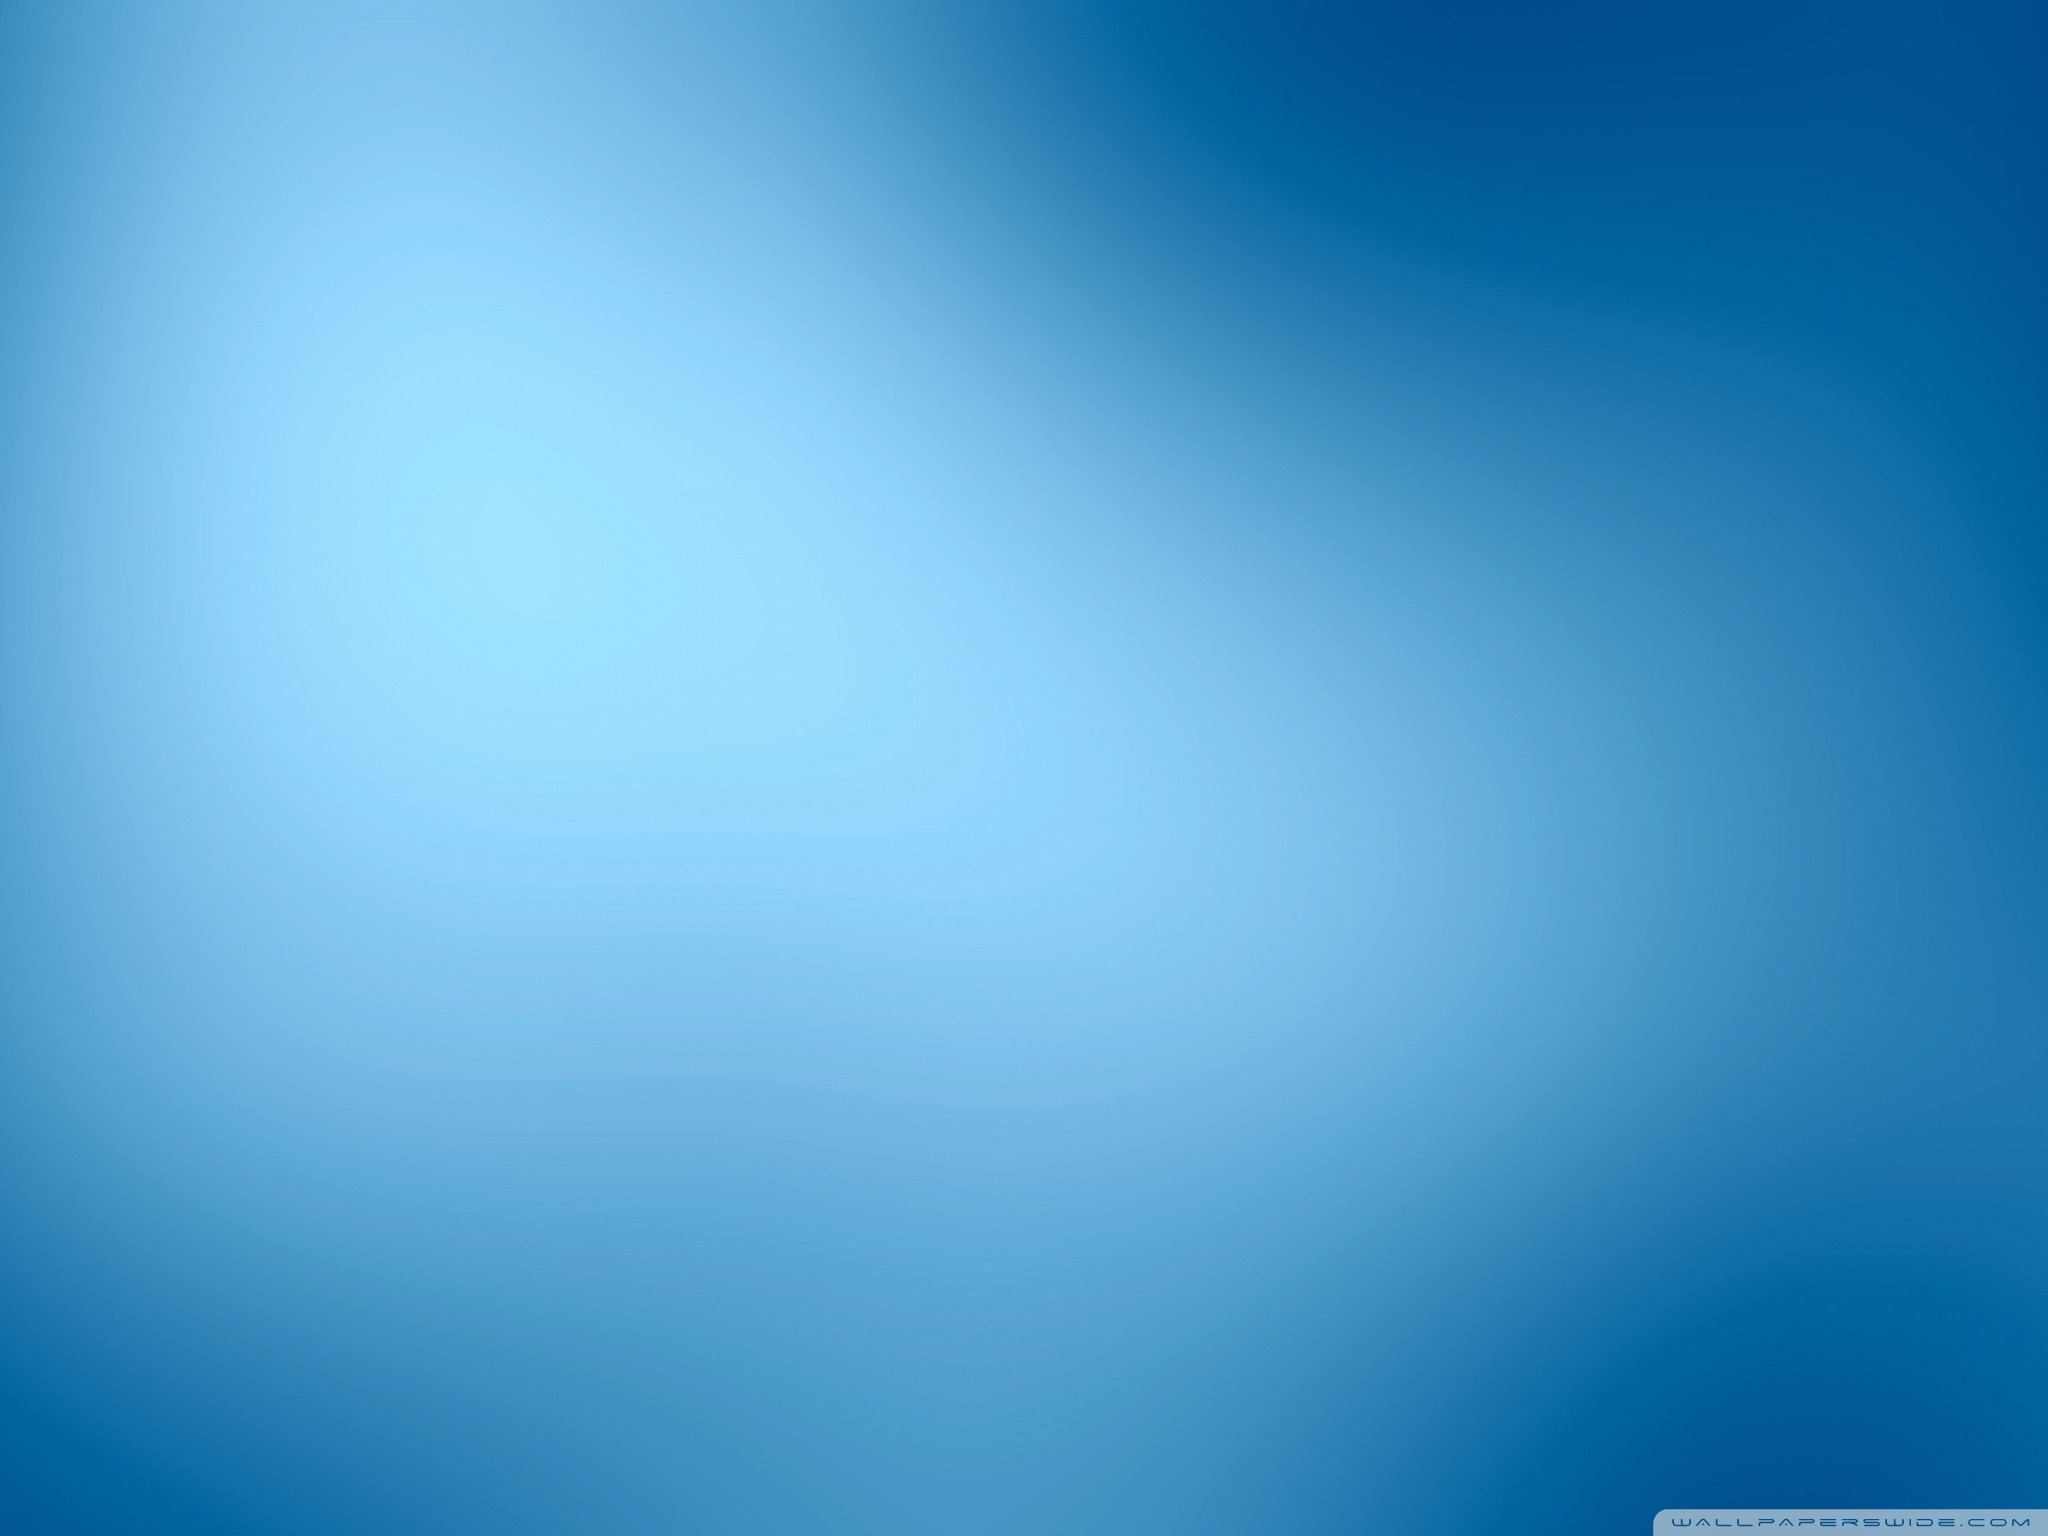 Res: 2048x1536, blue background image Simple Blue Background wallpaper  #10988